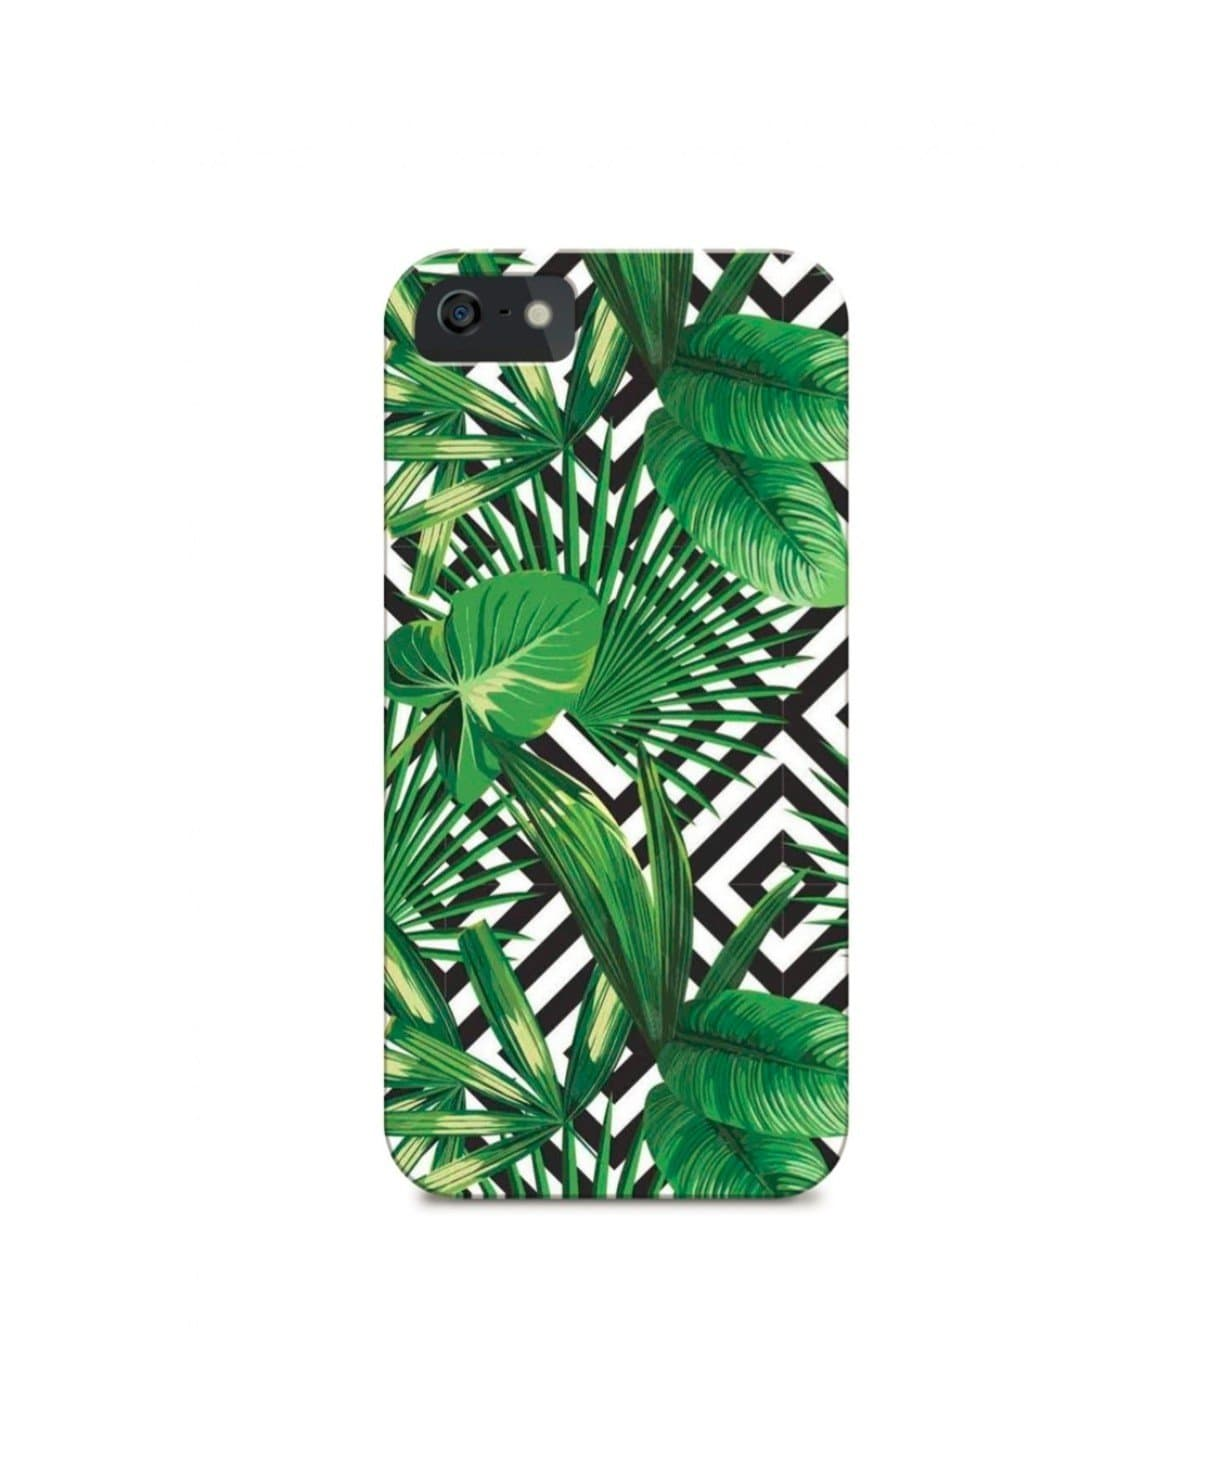 Tropical Monochrome Phone Cover (Personalisation Available) - Uptownie